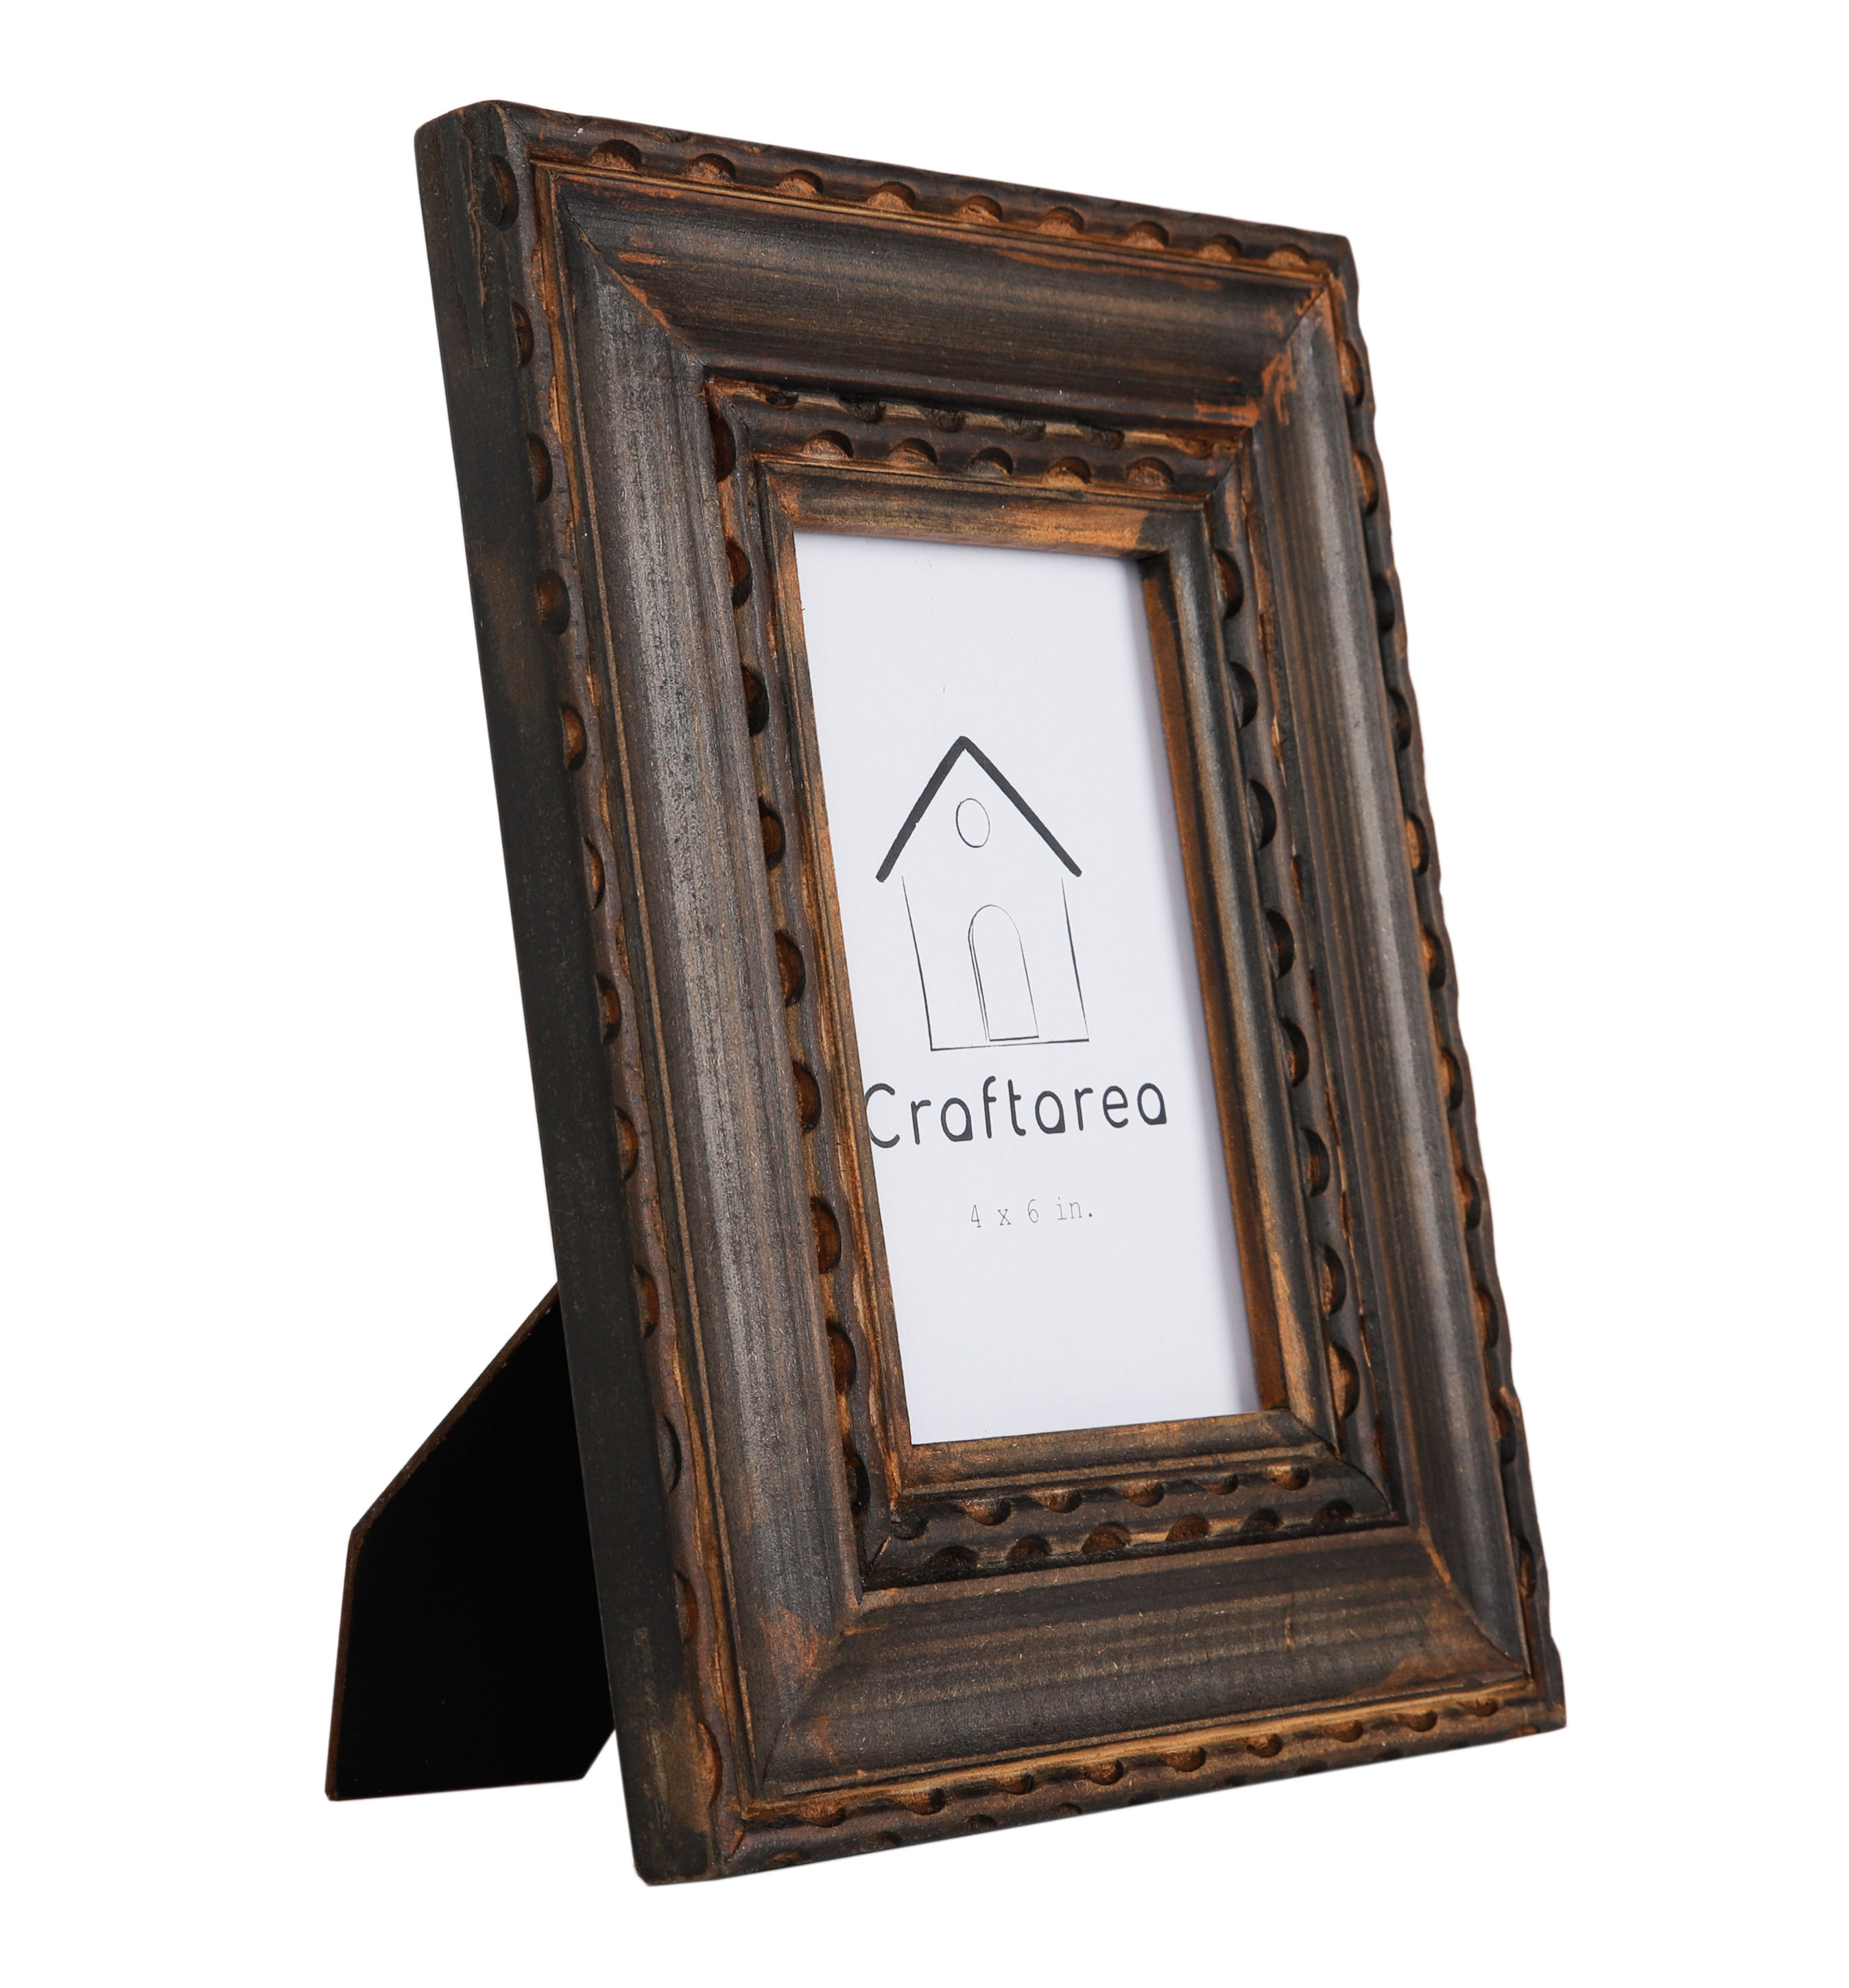 Vintage Wooden Handcrafted Table Top Picture Frame (4x6 inches)